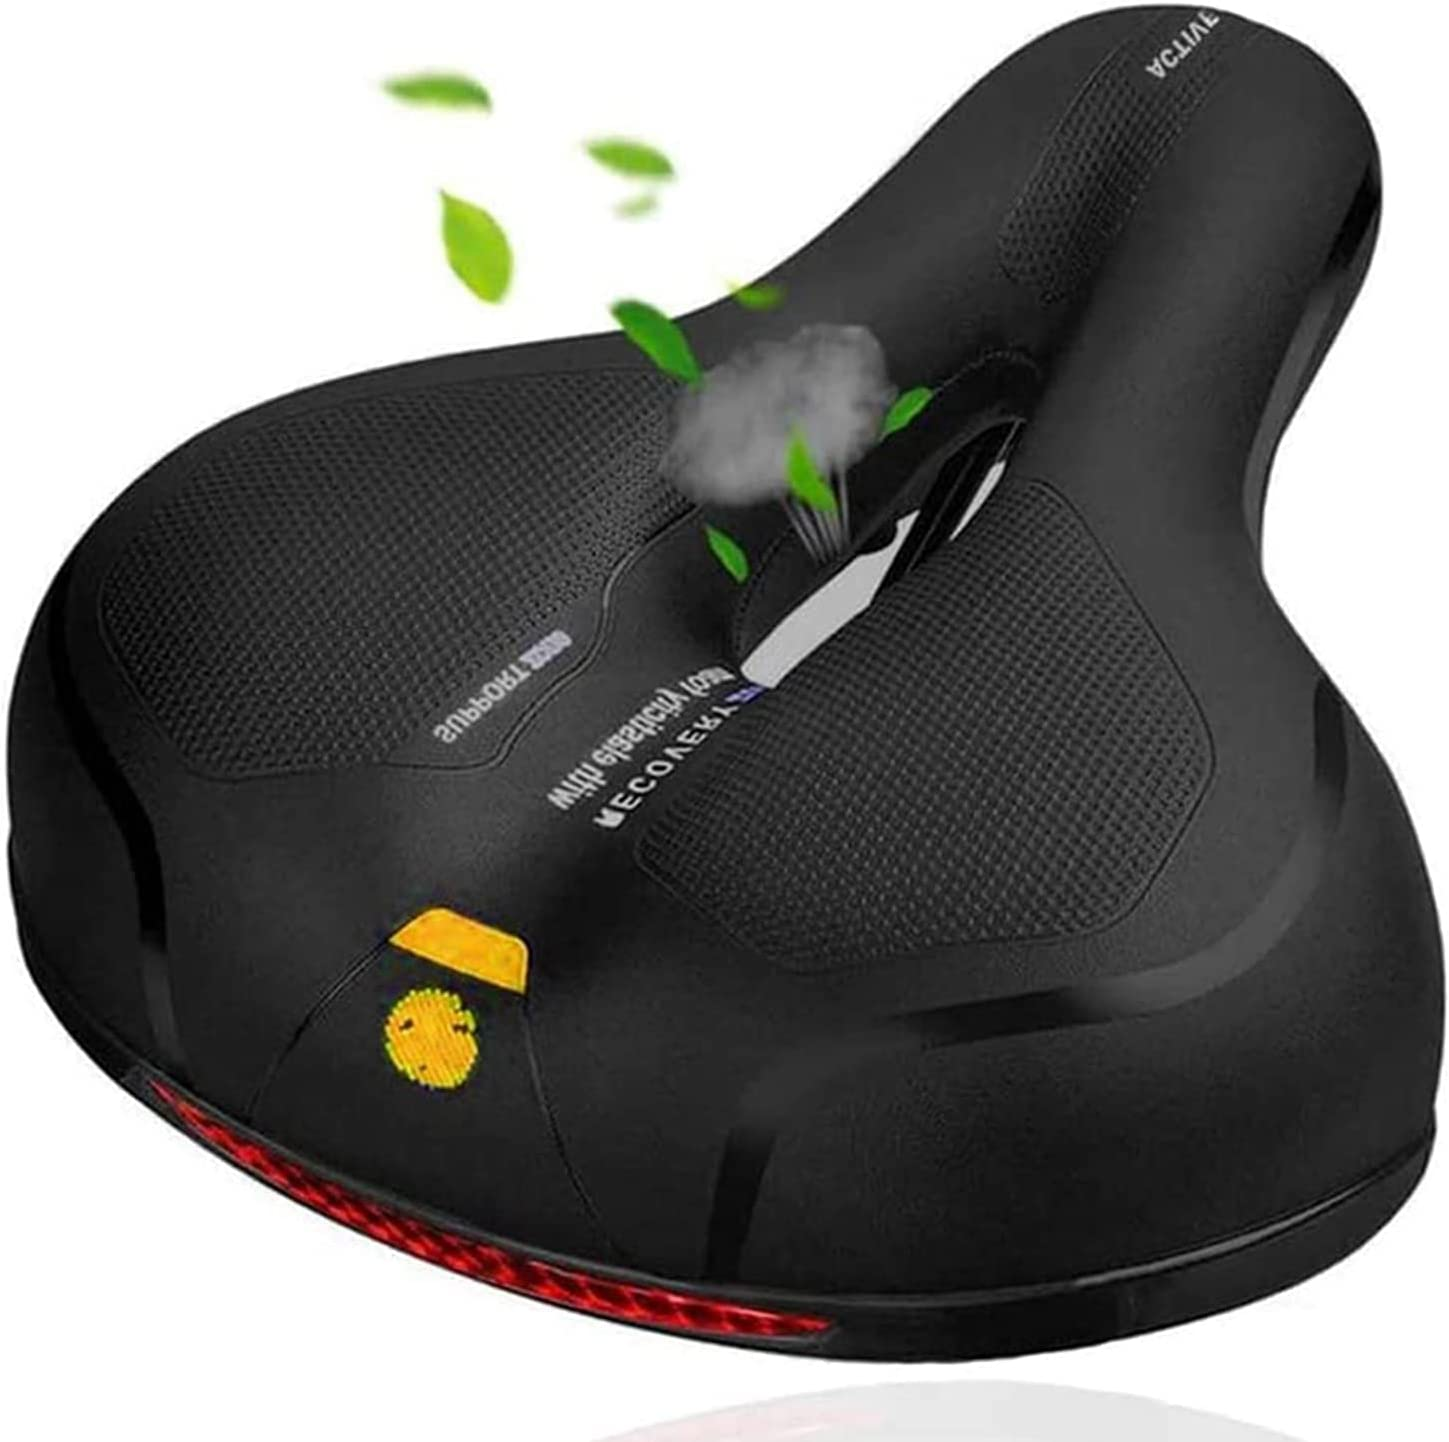 Abimy Bike Seat Bicycle for Women low-pricing Waterproof Max 49% OFF S Men